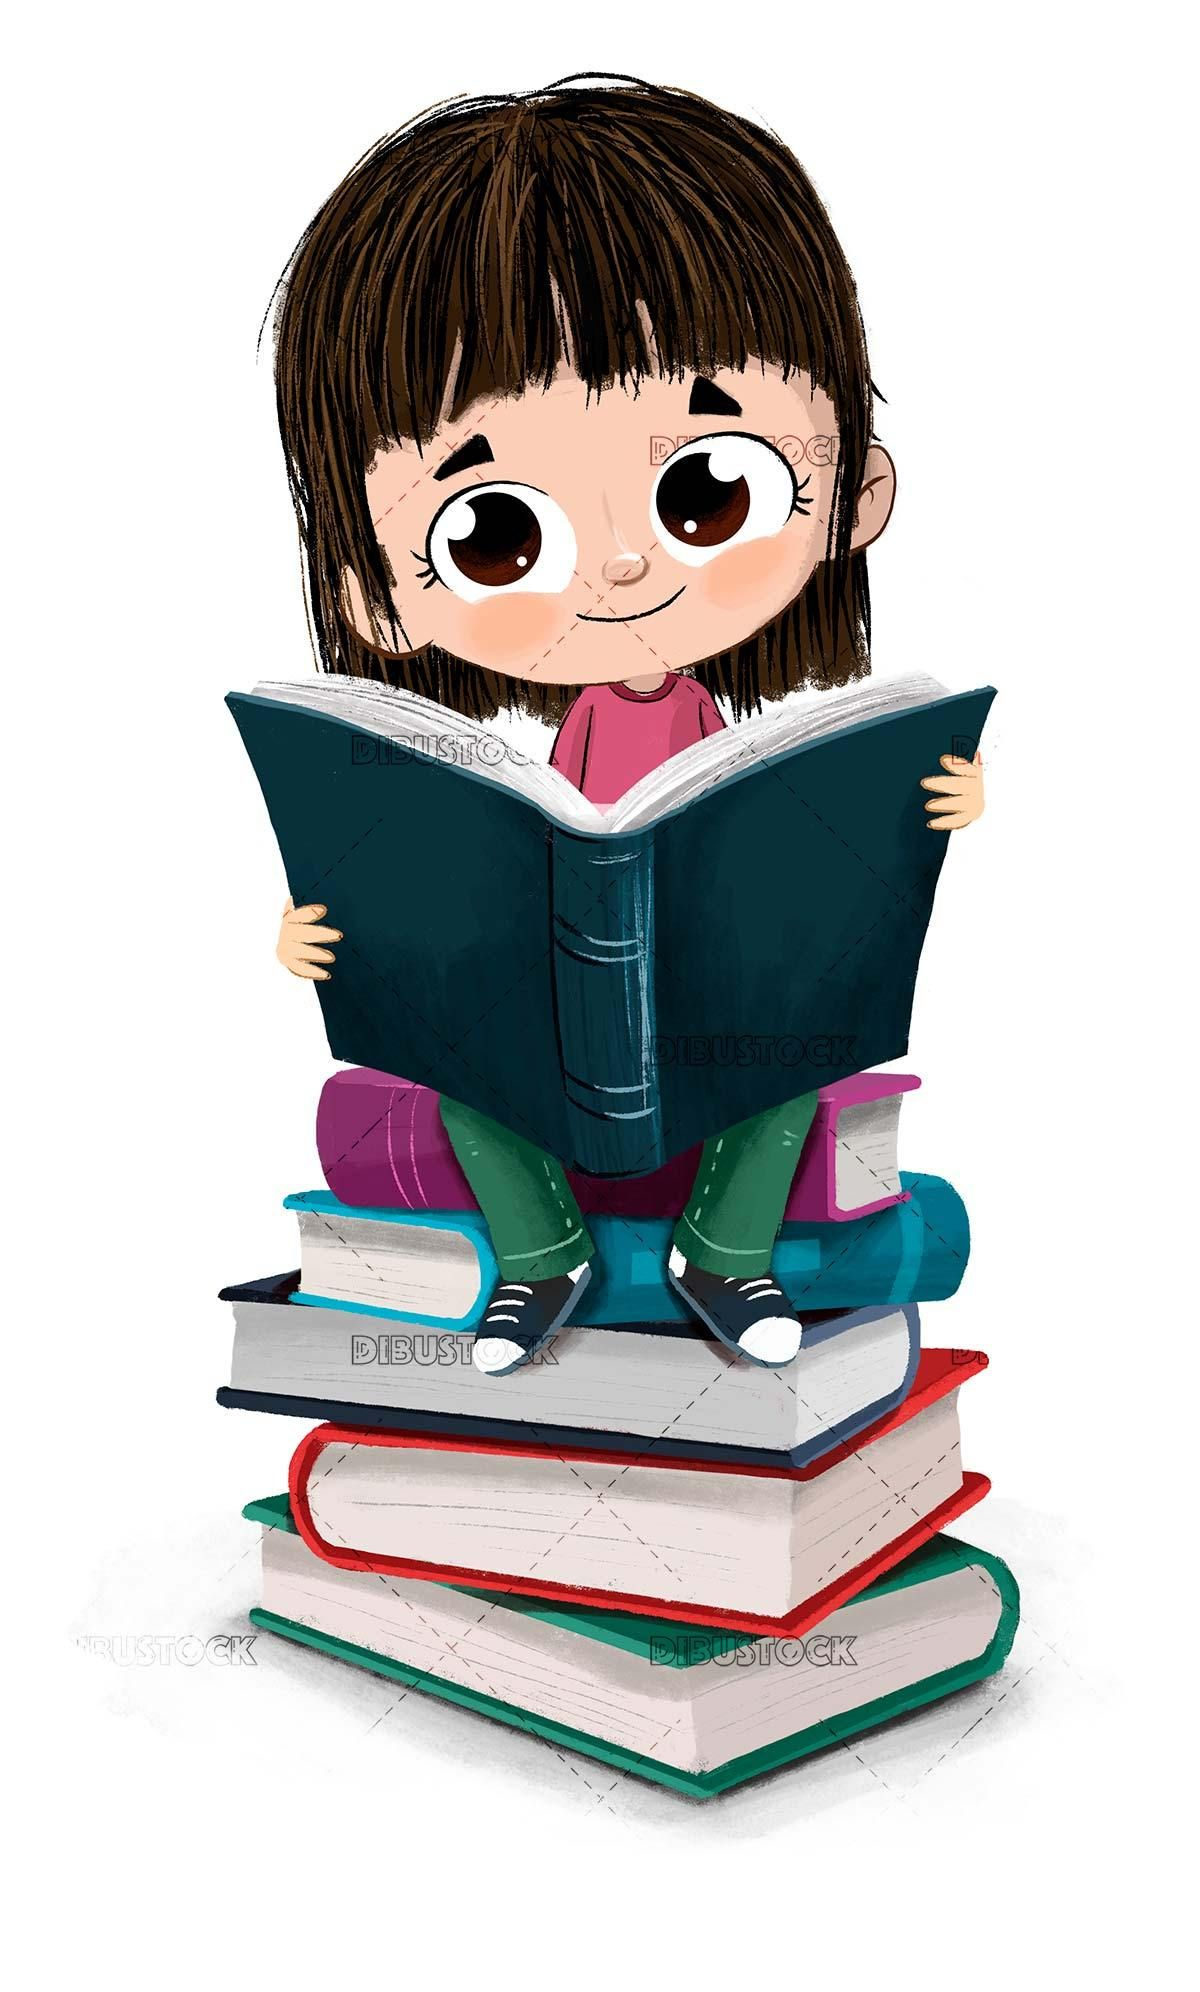 Little girl reading sitting on a pile of books | Girl reading book, Art  drawings for kids, Kids cartoon characters